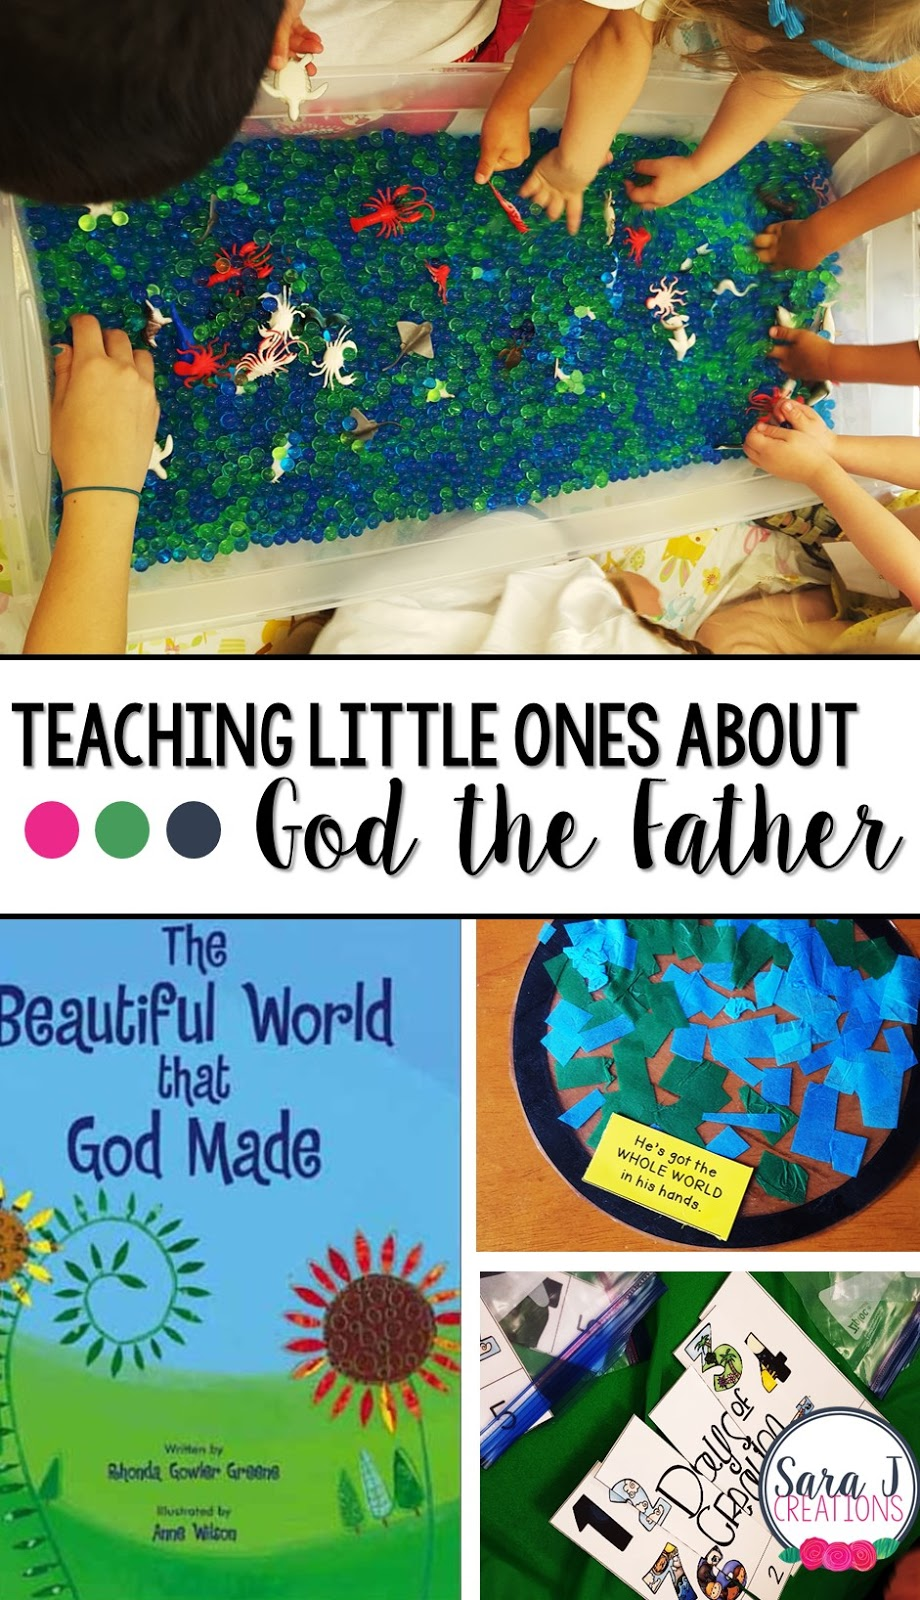 Teaching Preschoolers About God the Father | Sara J Creations